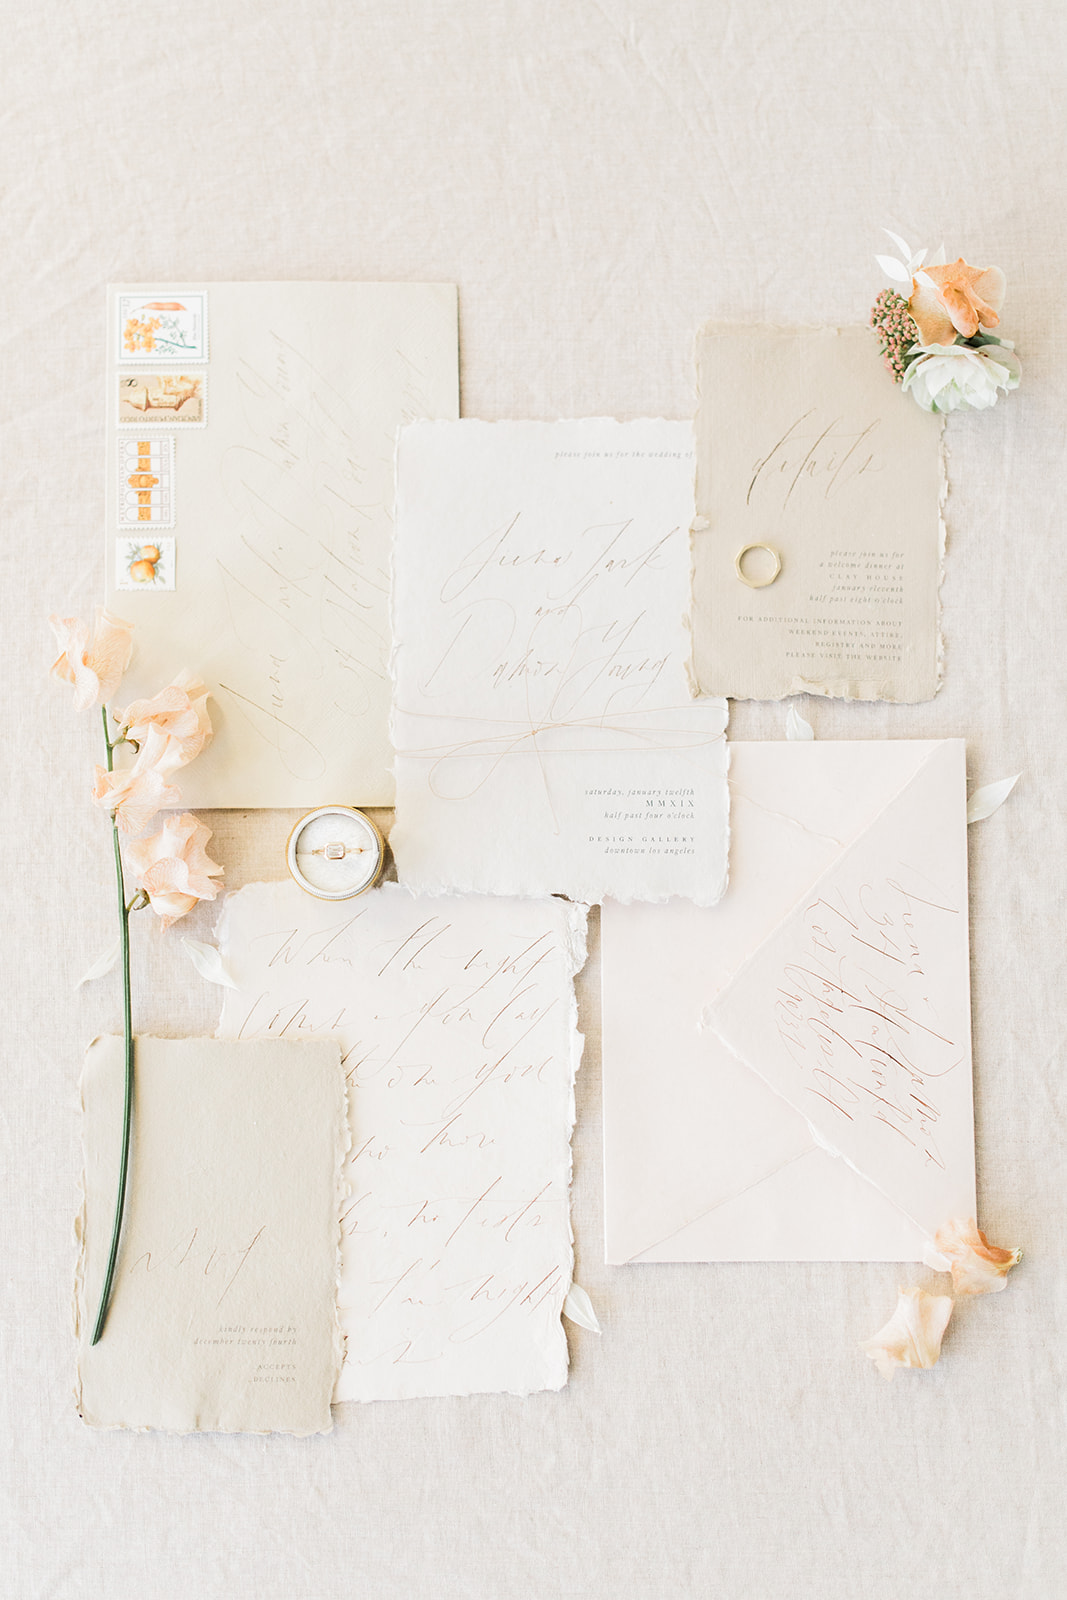 MUSE Organic Wedding Invitations with Calligraphy | Shotgunning for Love